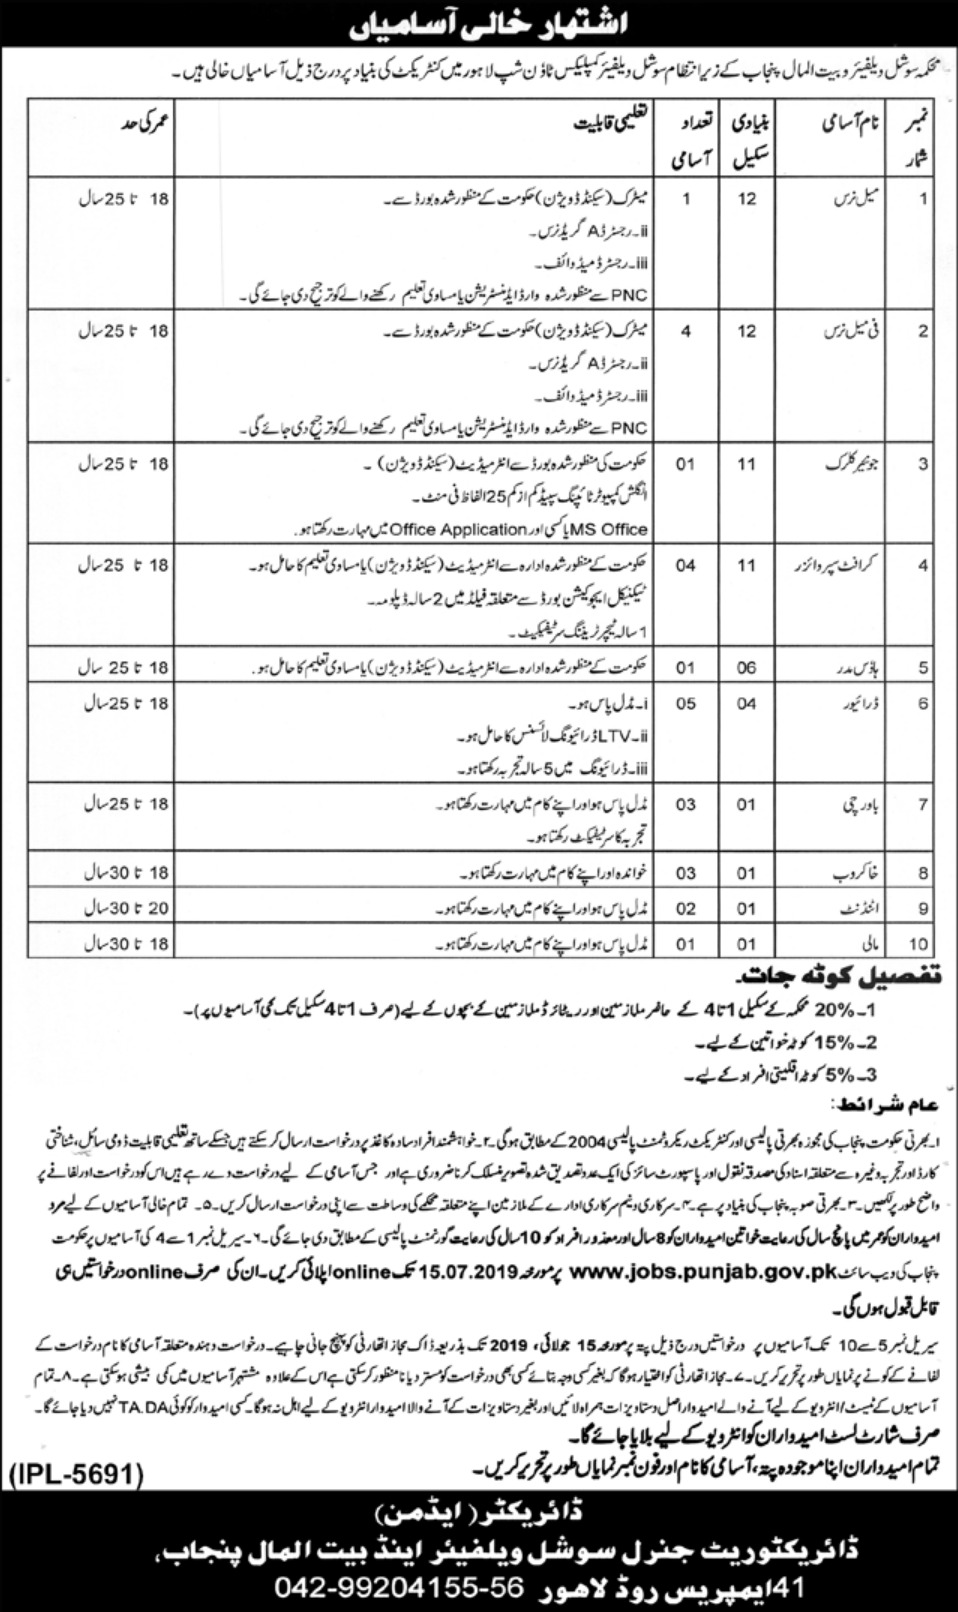 Social Welfare & Bait-ul-Maal Department Punjab Jobs 2019